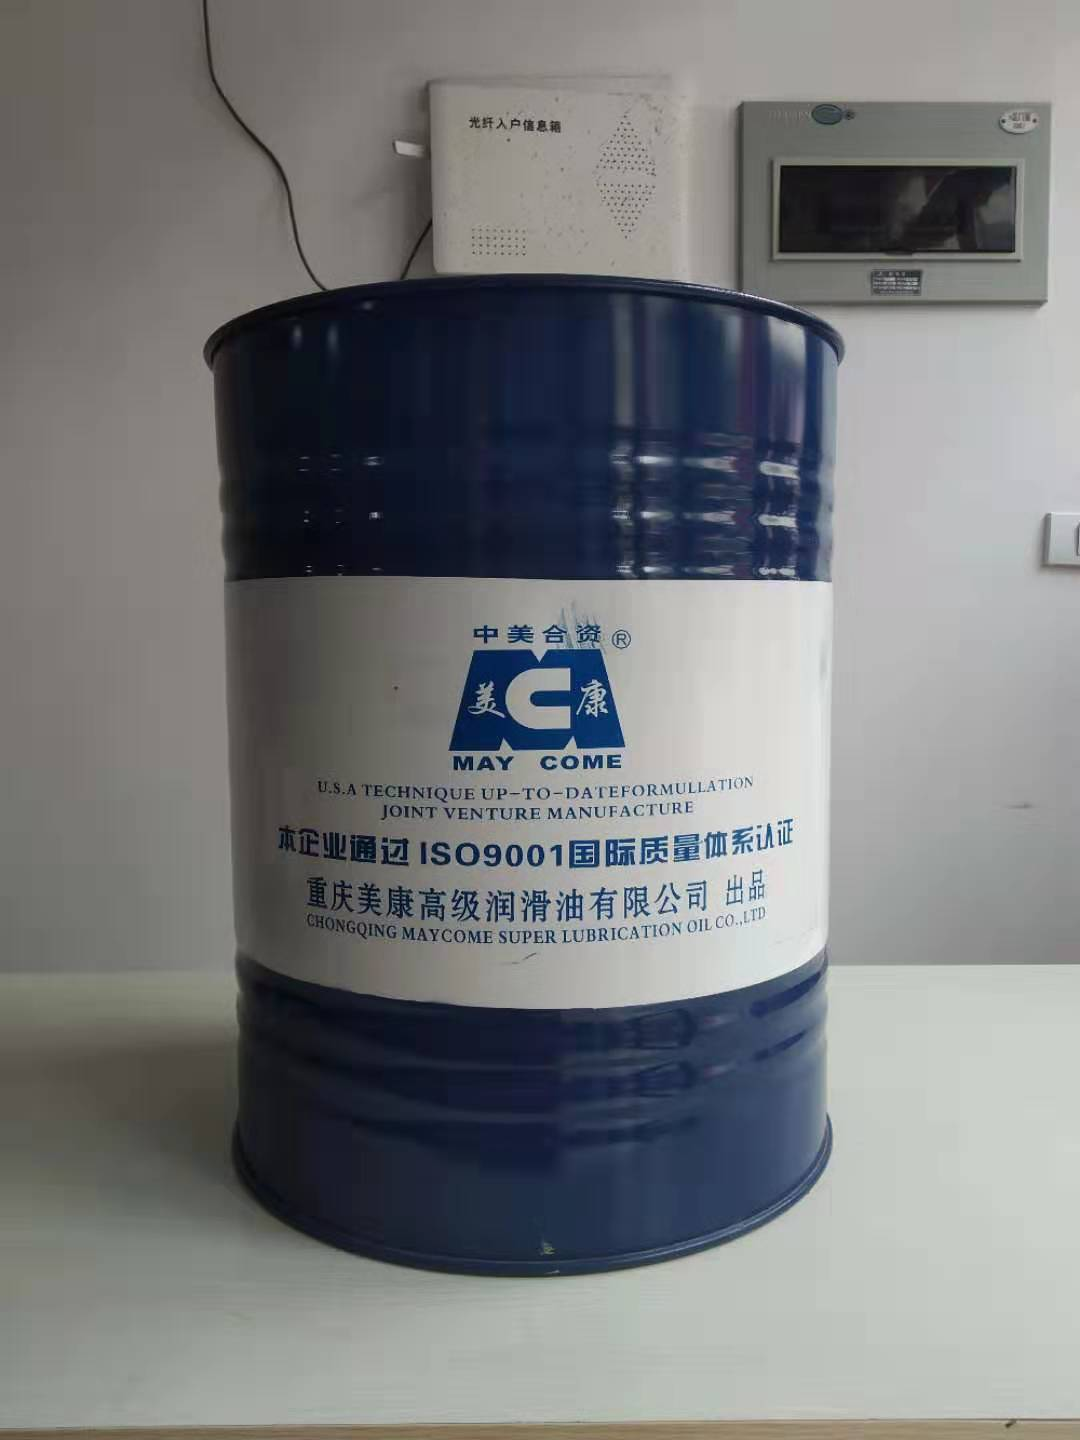 Cummins engine oil CH-4 20W/50 diesel generator ship engine dedicated 45L 40KG iron barrel